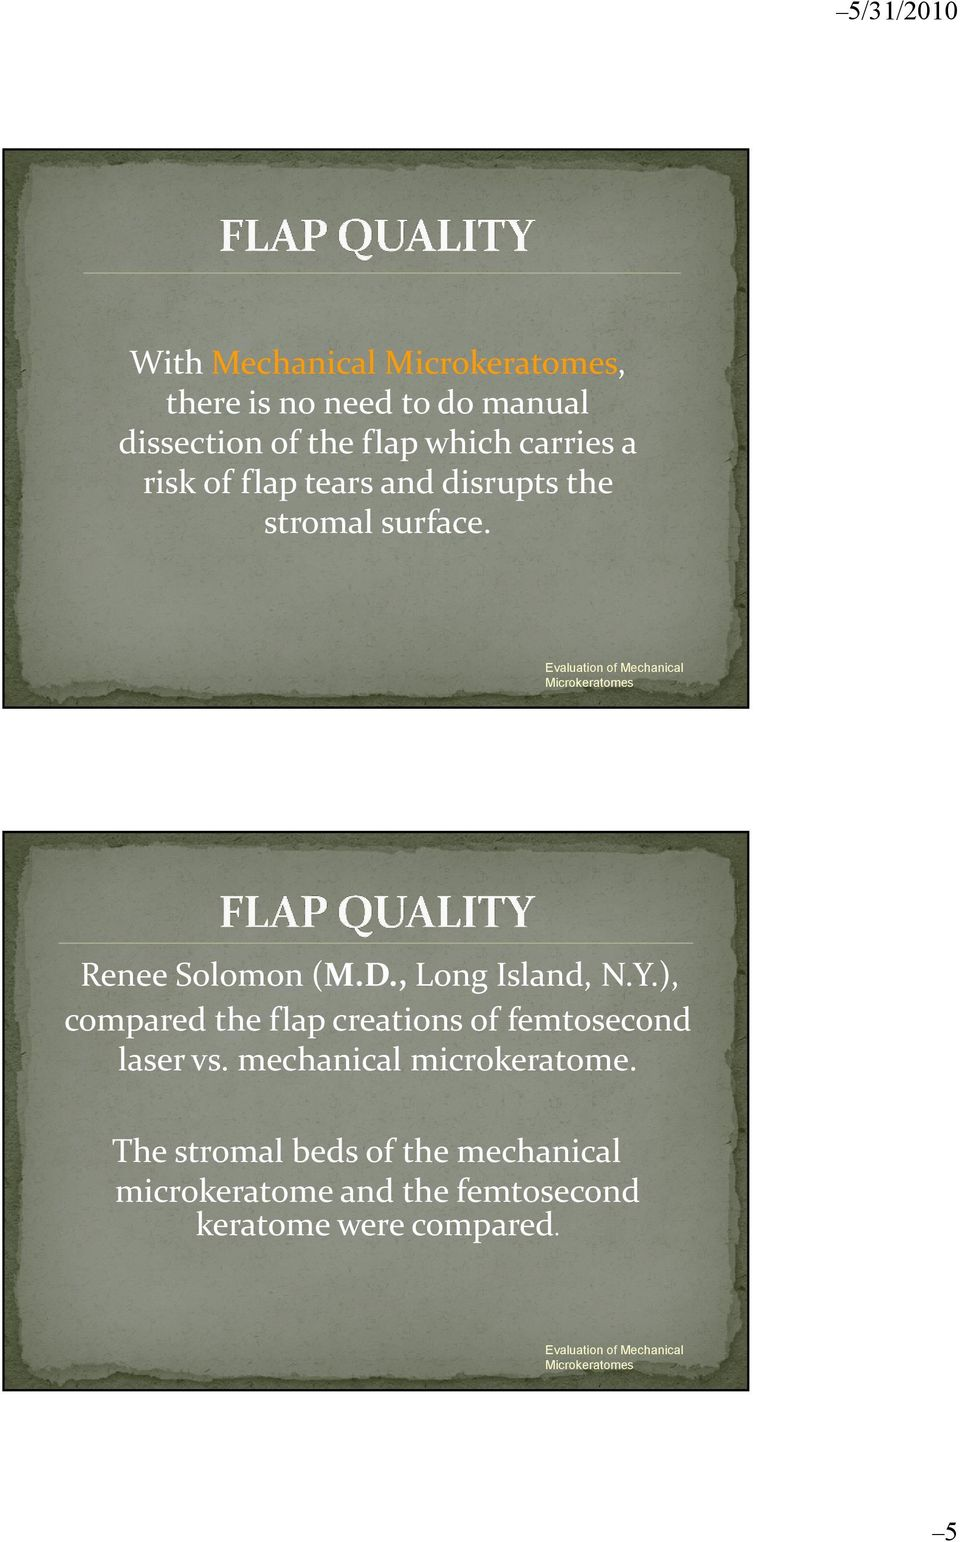 Y.), compared the flap creations of femtosecond laser vs. mechanical microkeratome.